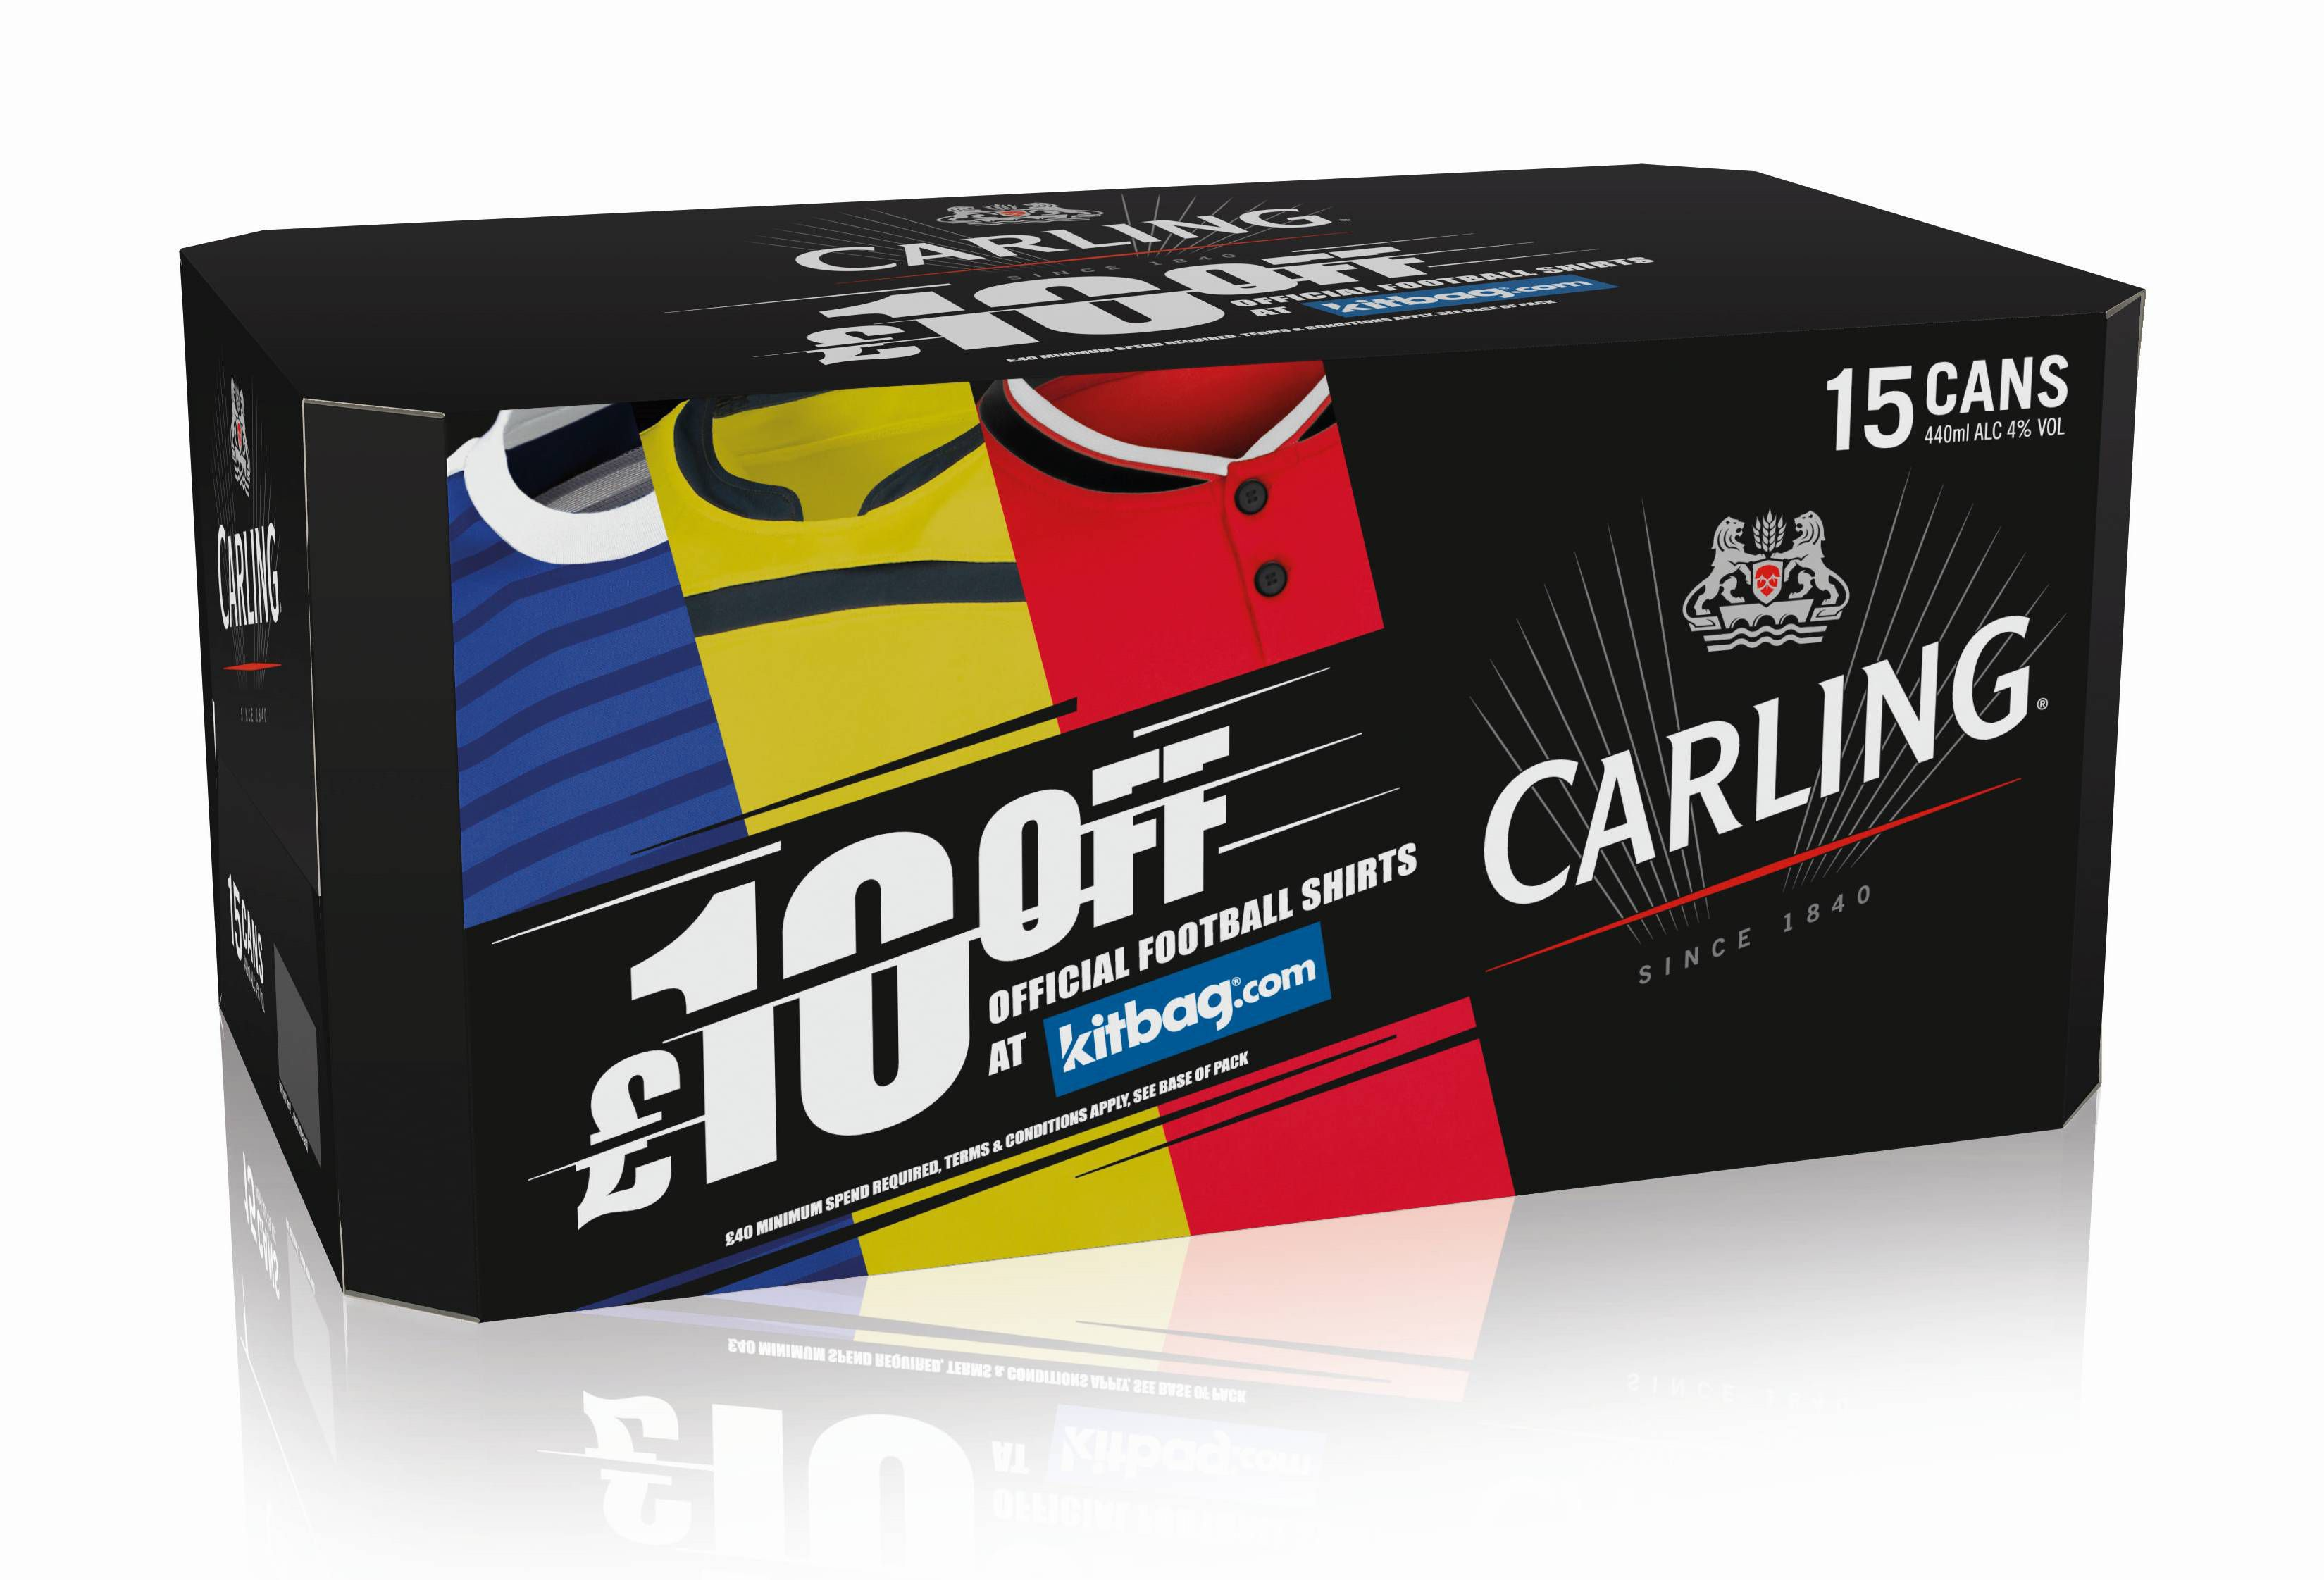 Carling Wallpapers Hd